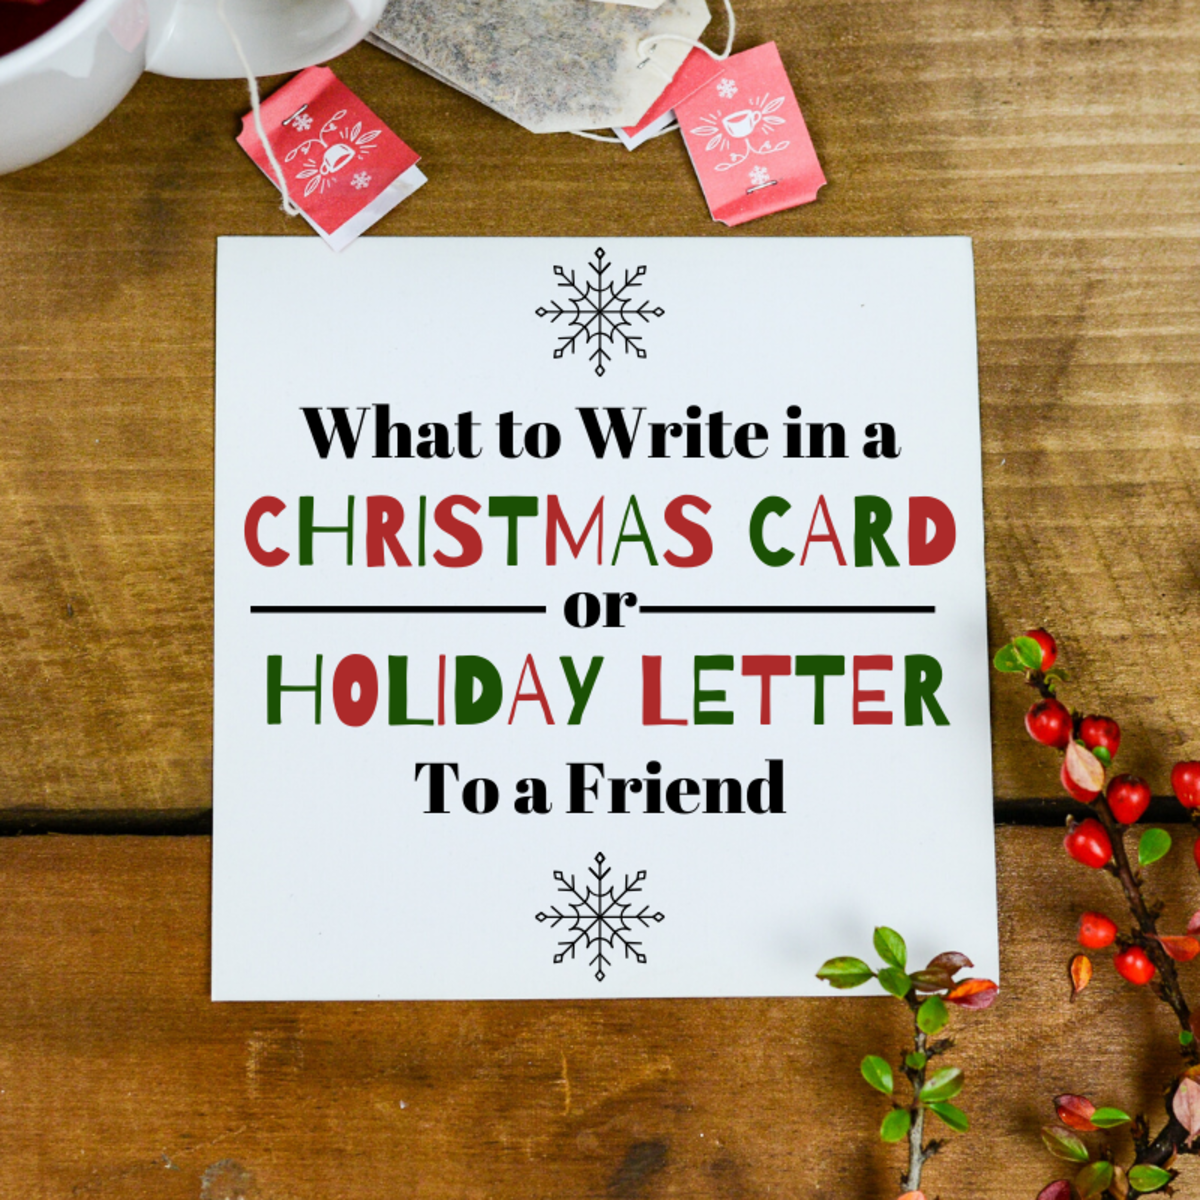 Christmas Cards and Holiday Letters